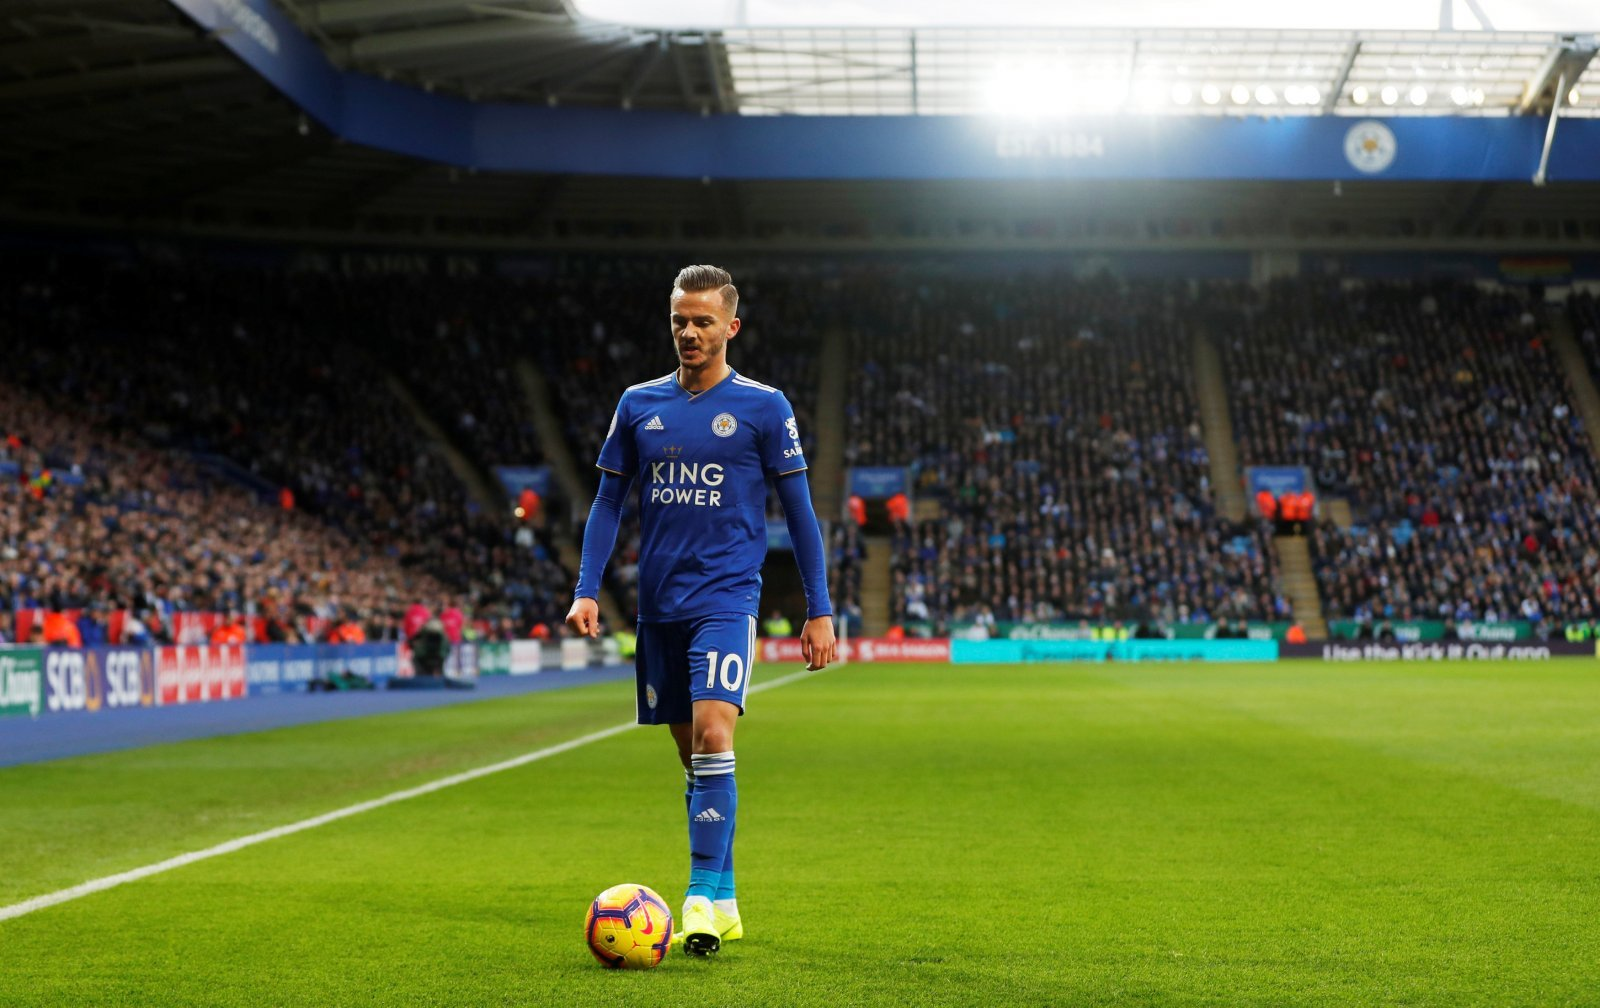 Opinion: Tottenham's failure to land either James Maddison or David Brooks will haunt Daniel Levy and Mauricio Pochettino